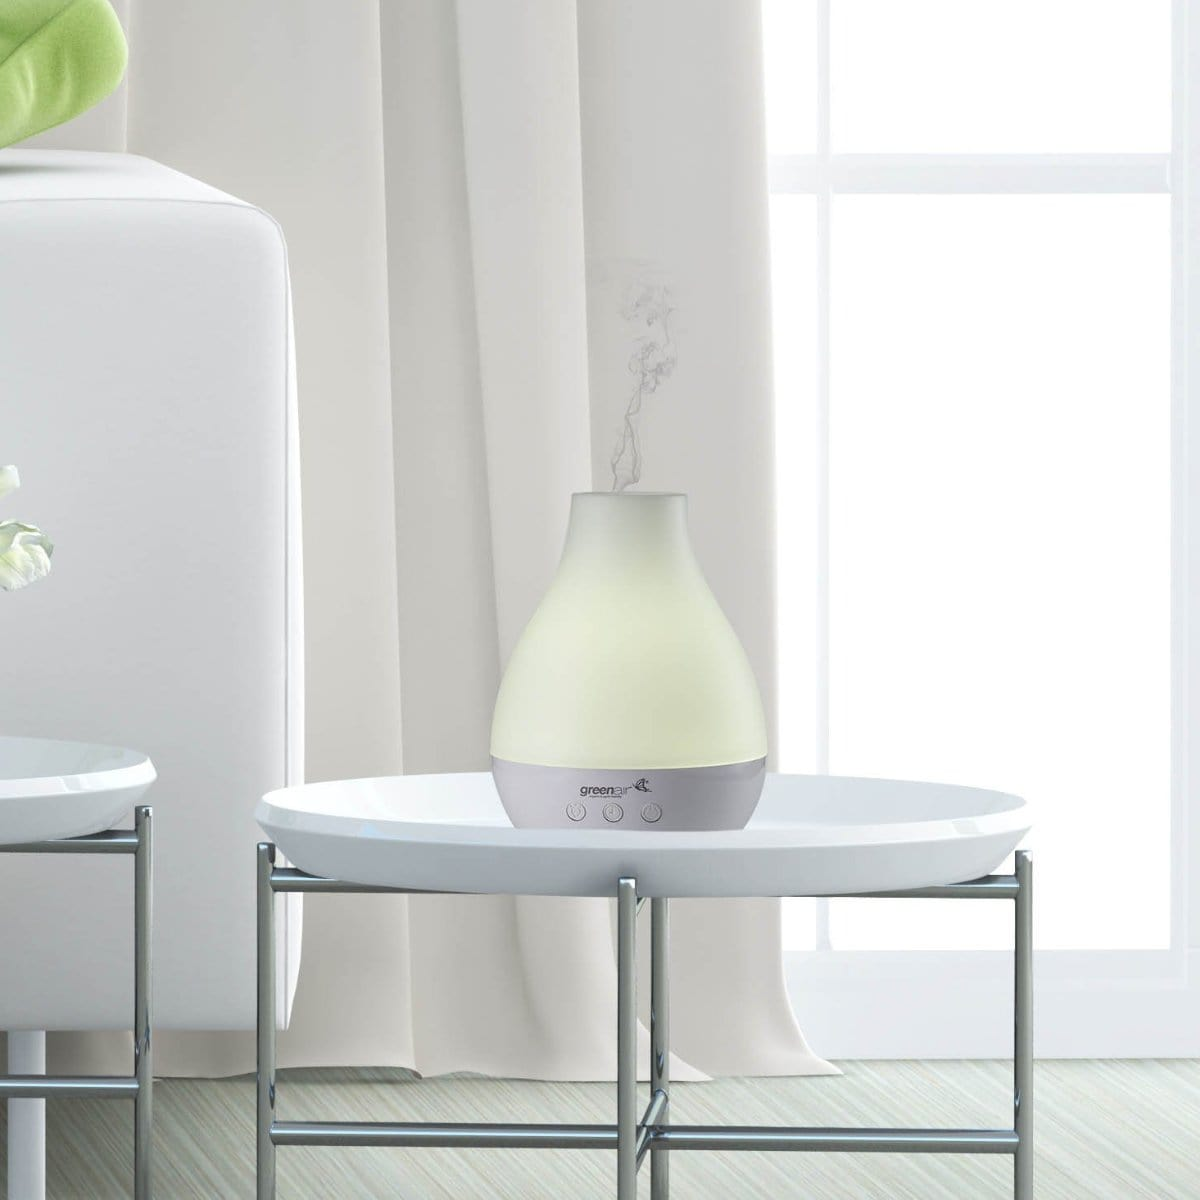 GreenAir Breathe Aromatherapy Diffuser